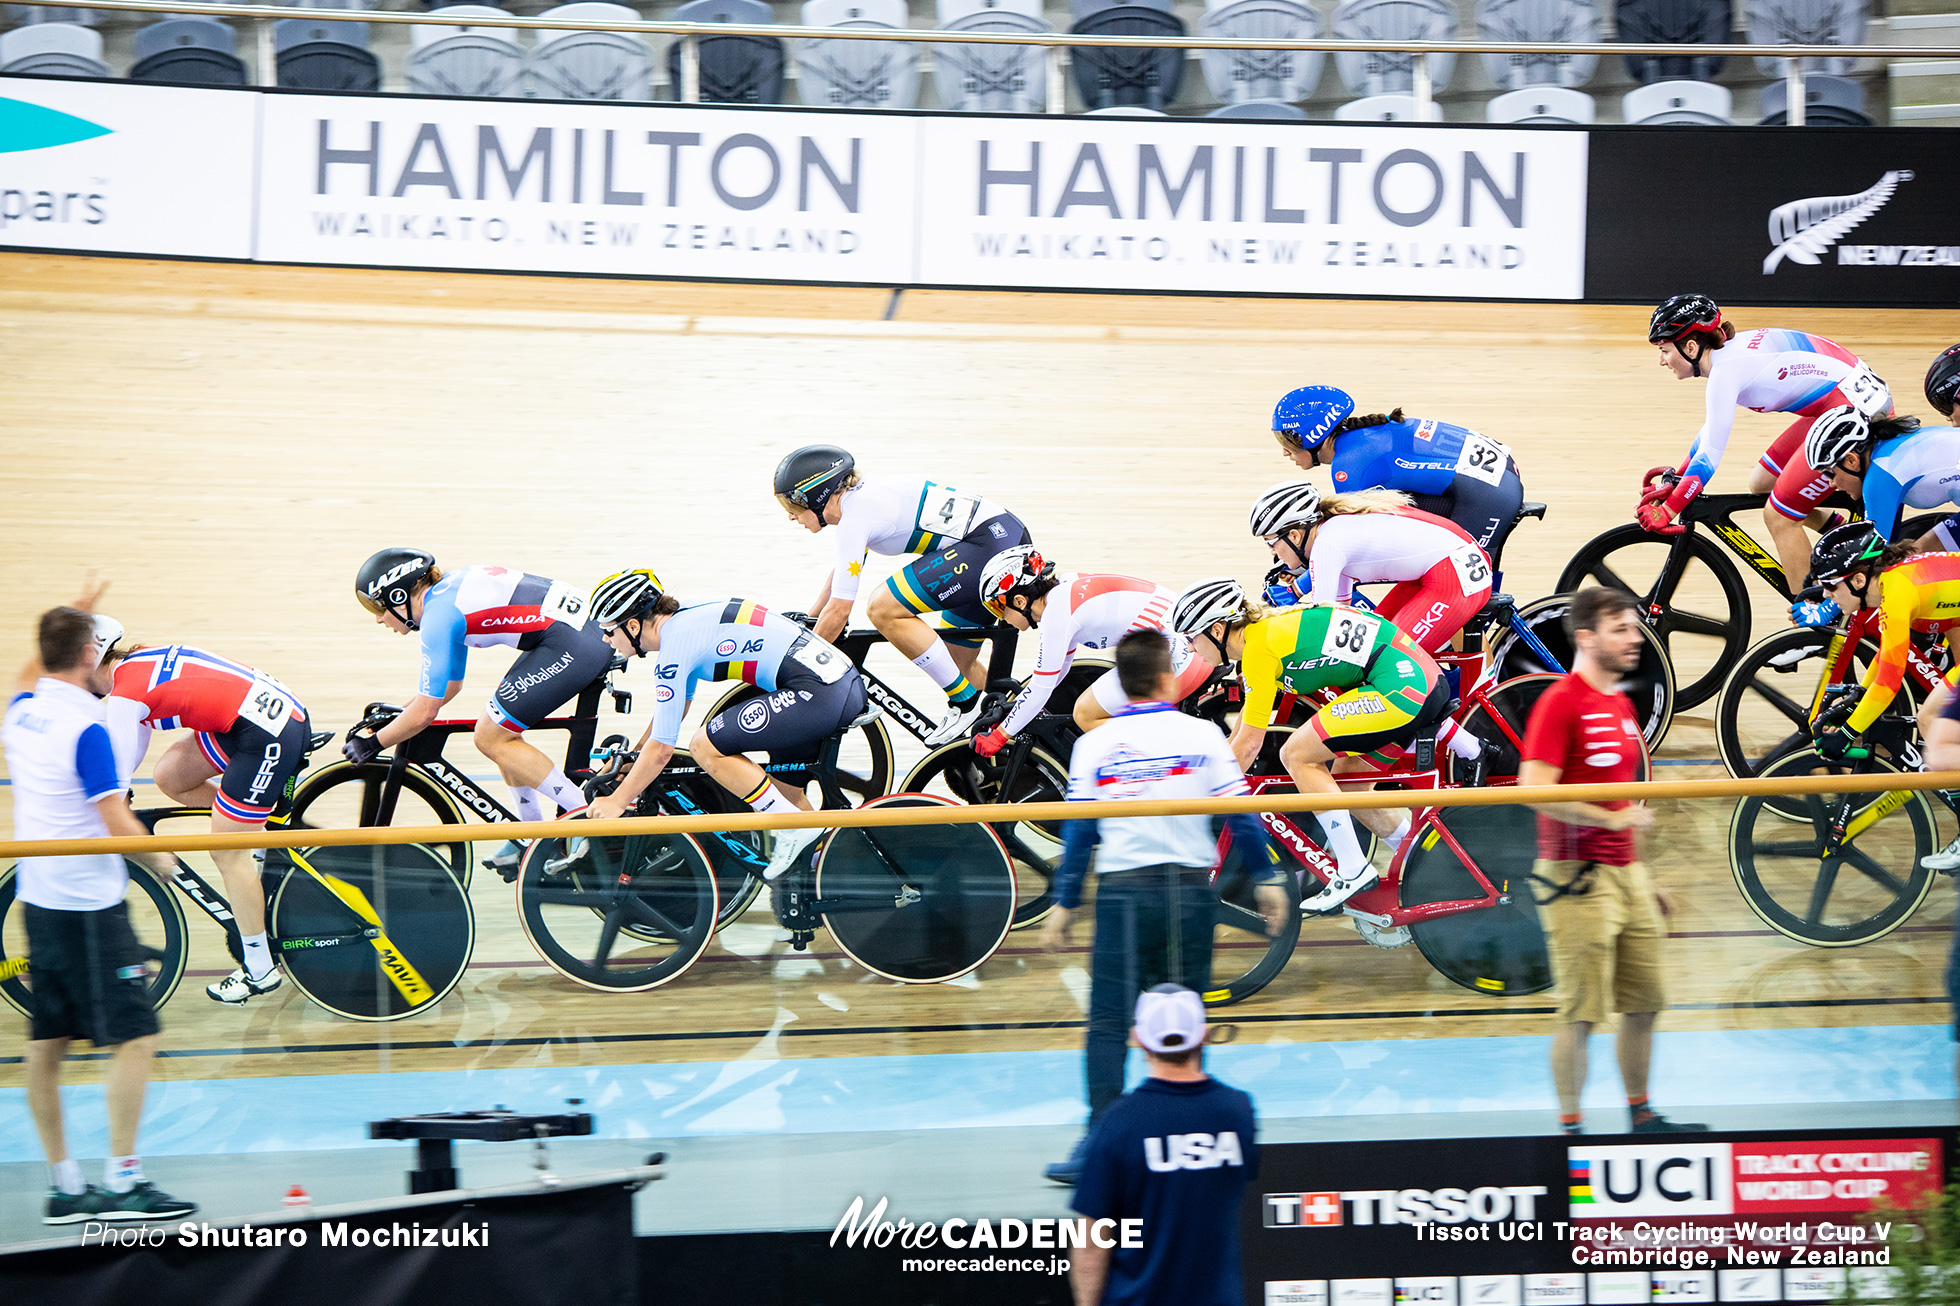 Scratch Race/ Women's Omnium / Track Cycling World Cup V / Cambridge, New Zealand